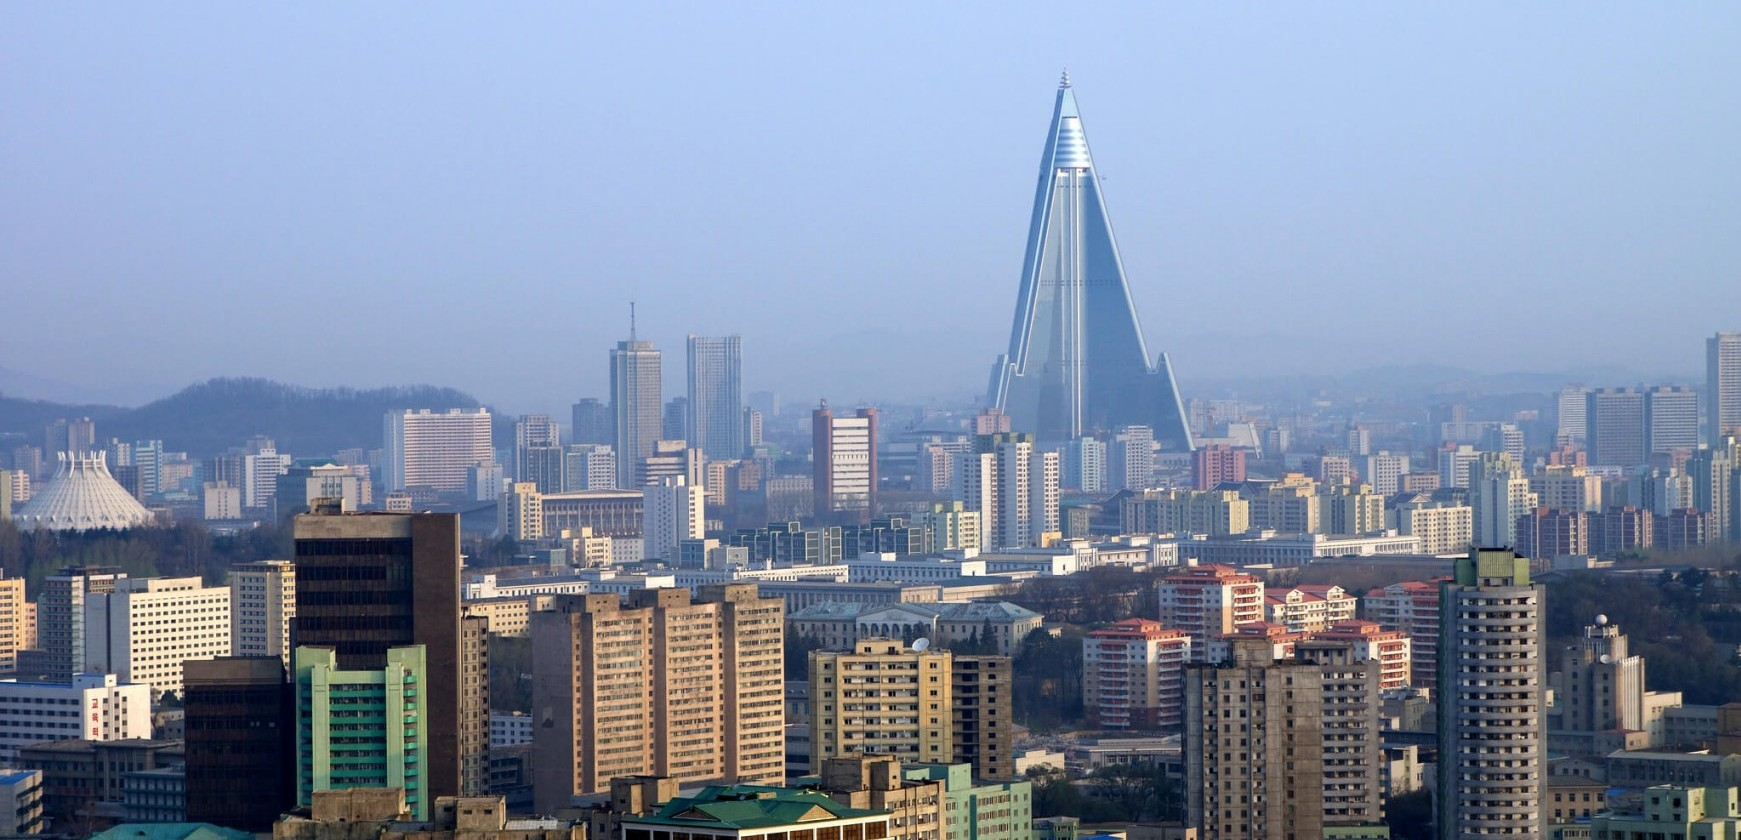 View of Pyongyang, North Korea